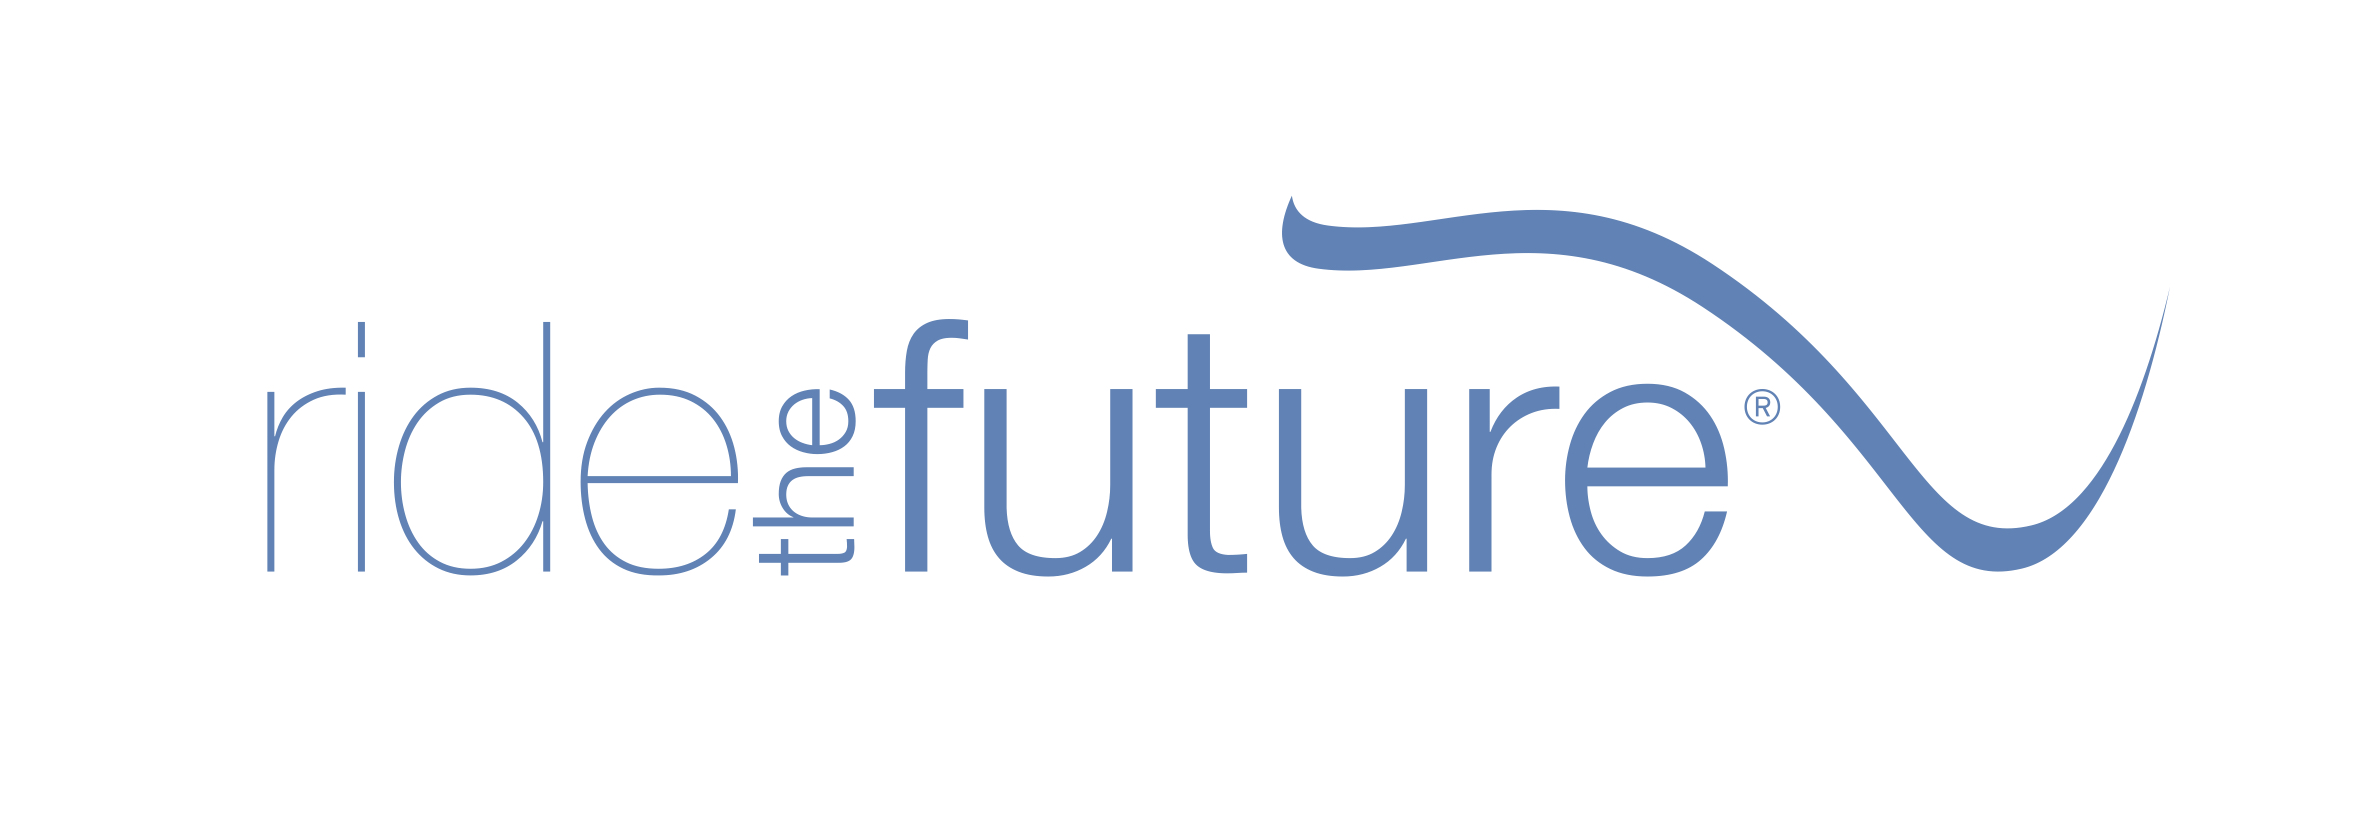 Logo Ride the future colore con swirl.jpg